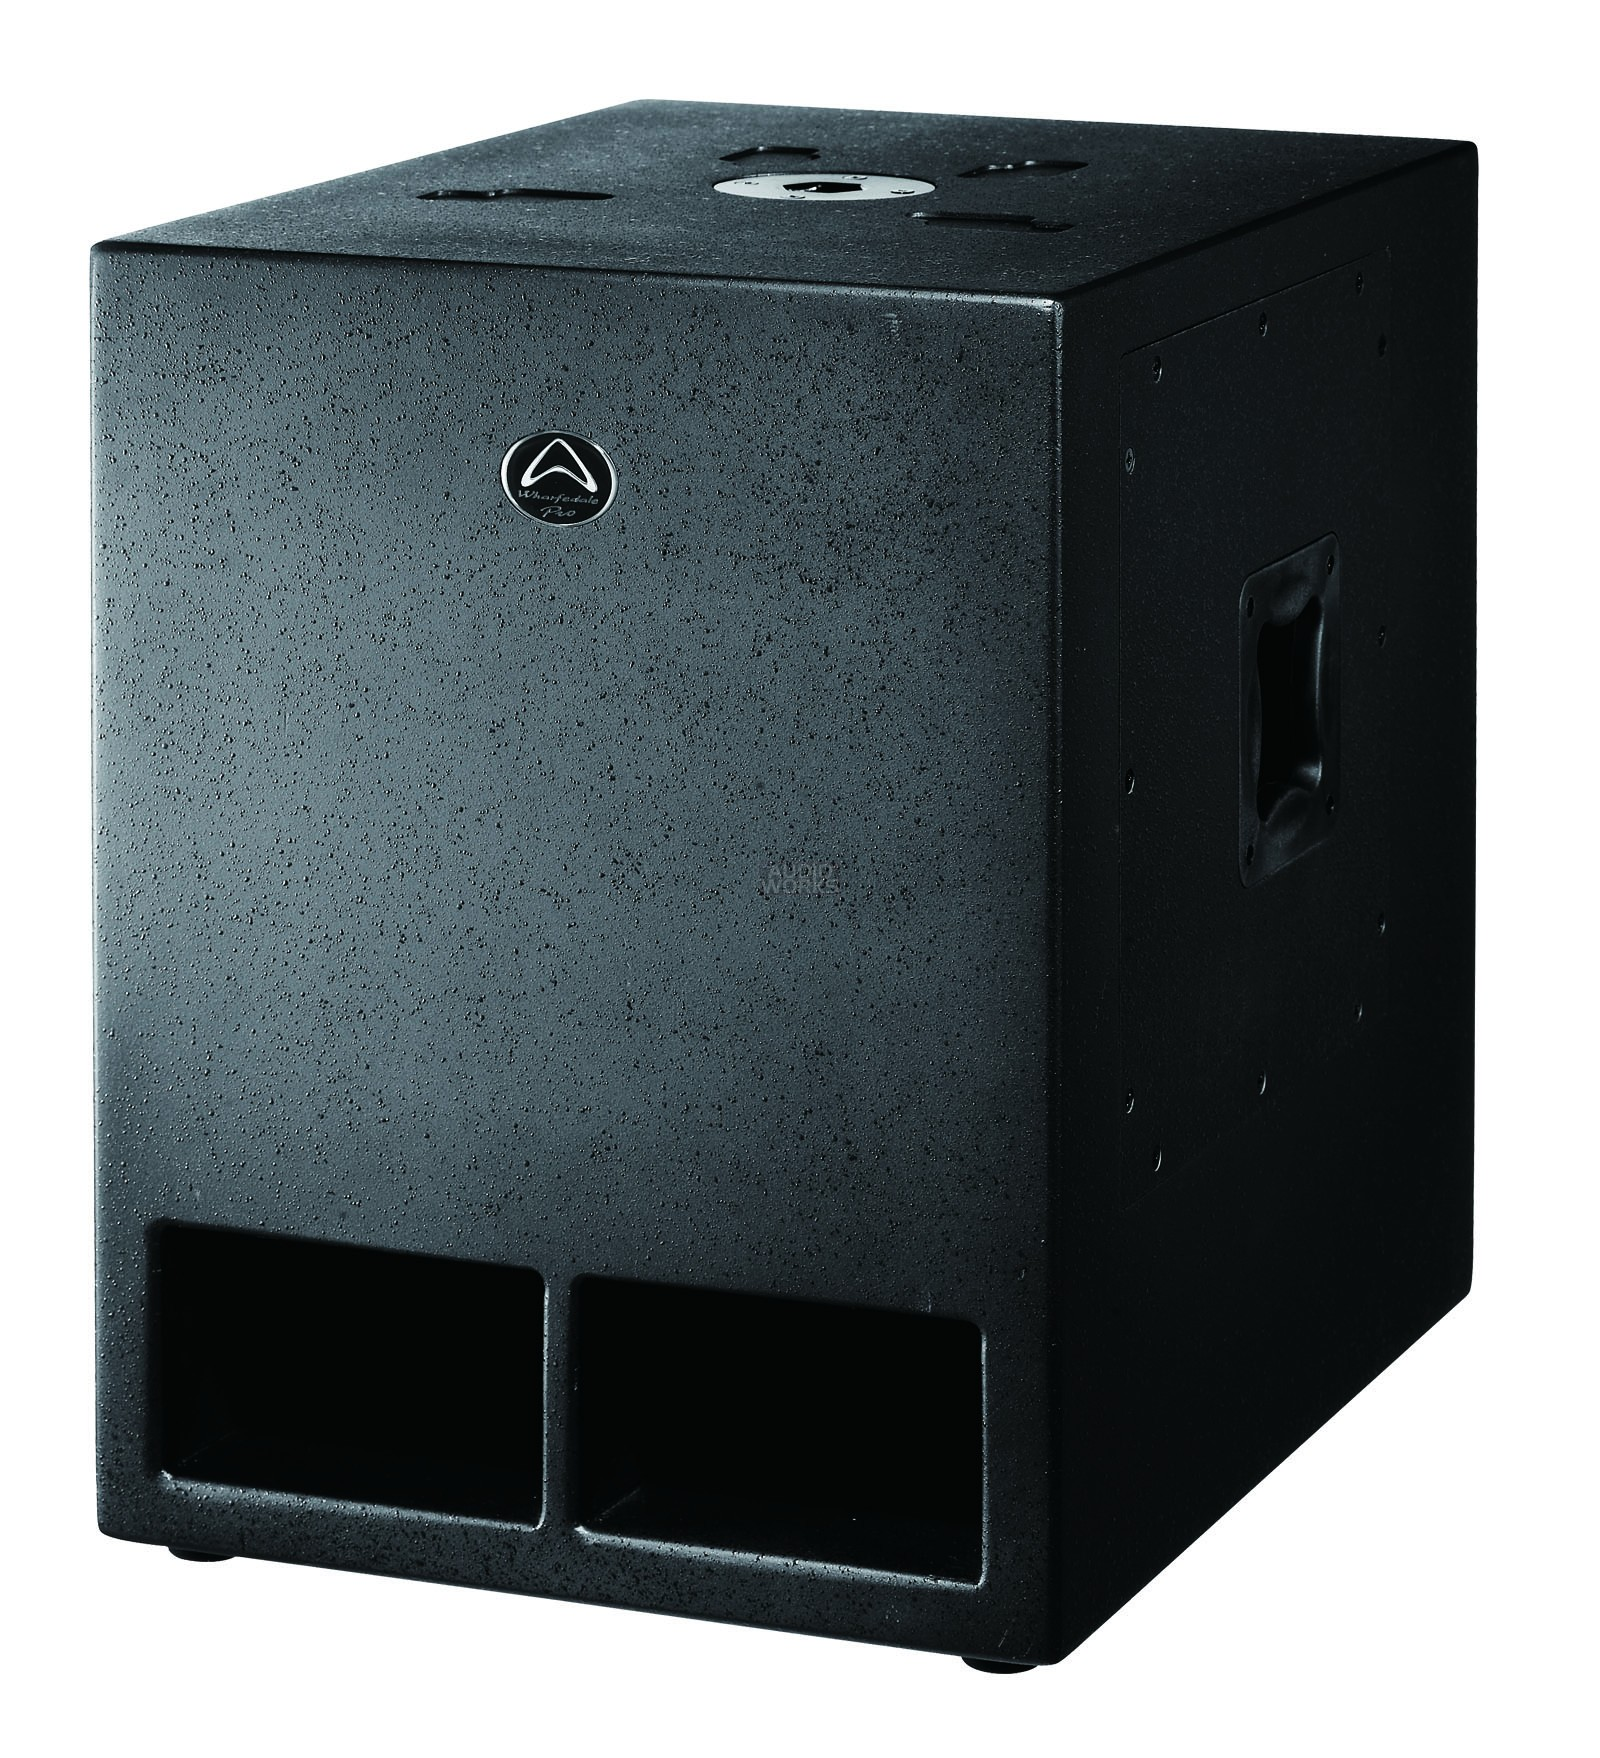 WHARFEDALE PRO TITAN SUB-A15 400W RMS PROFESSIONAL ACTIVE SUBWOOFER